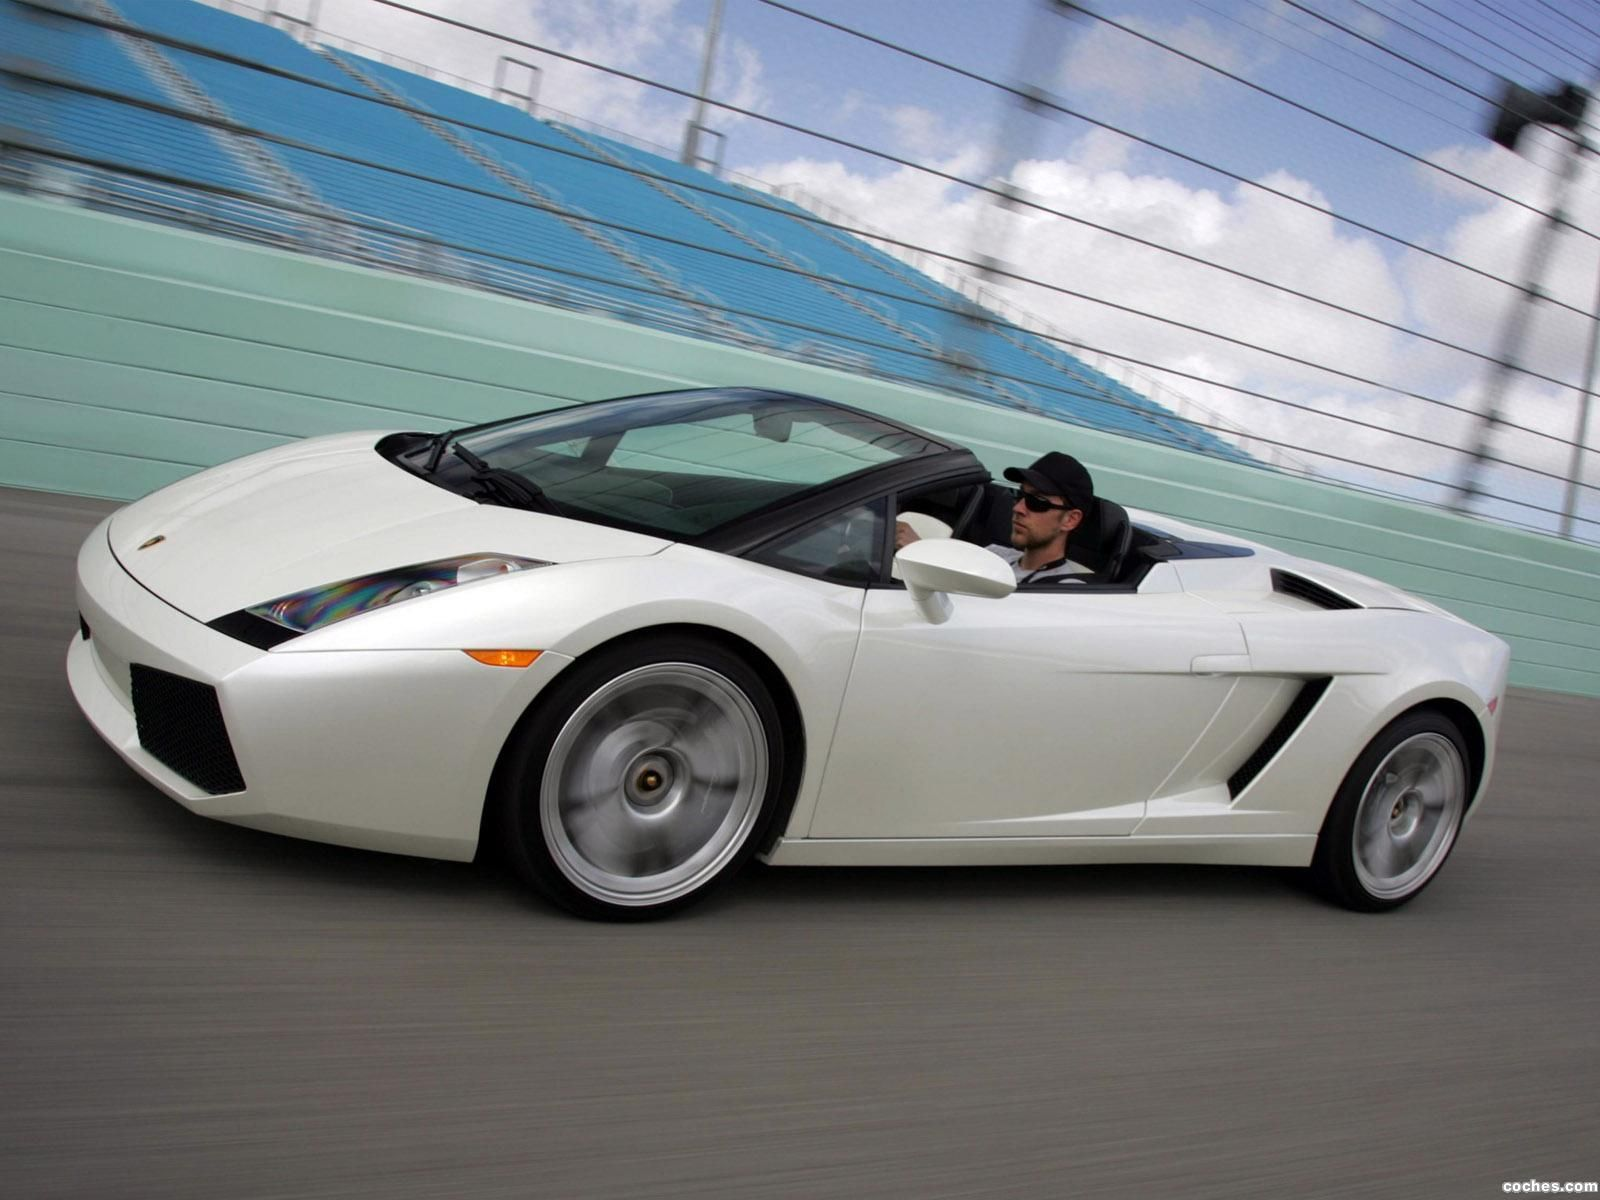 img work ed how in new area pre bolian owned lamborghini geographical dealership our does tennessee